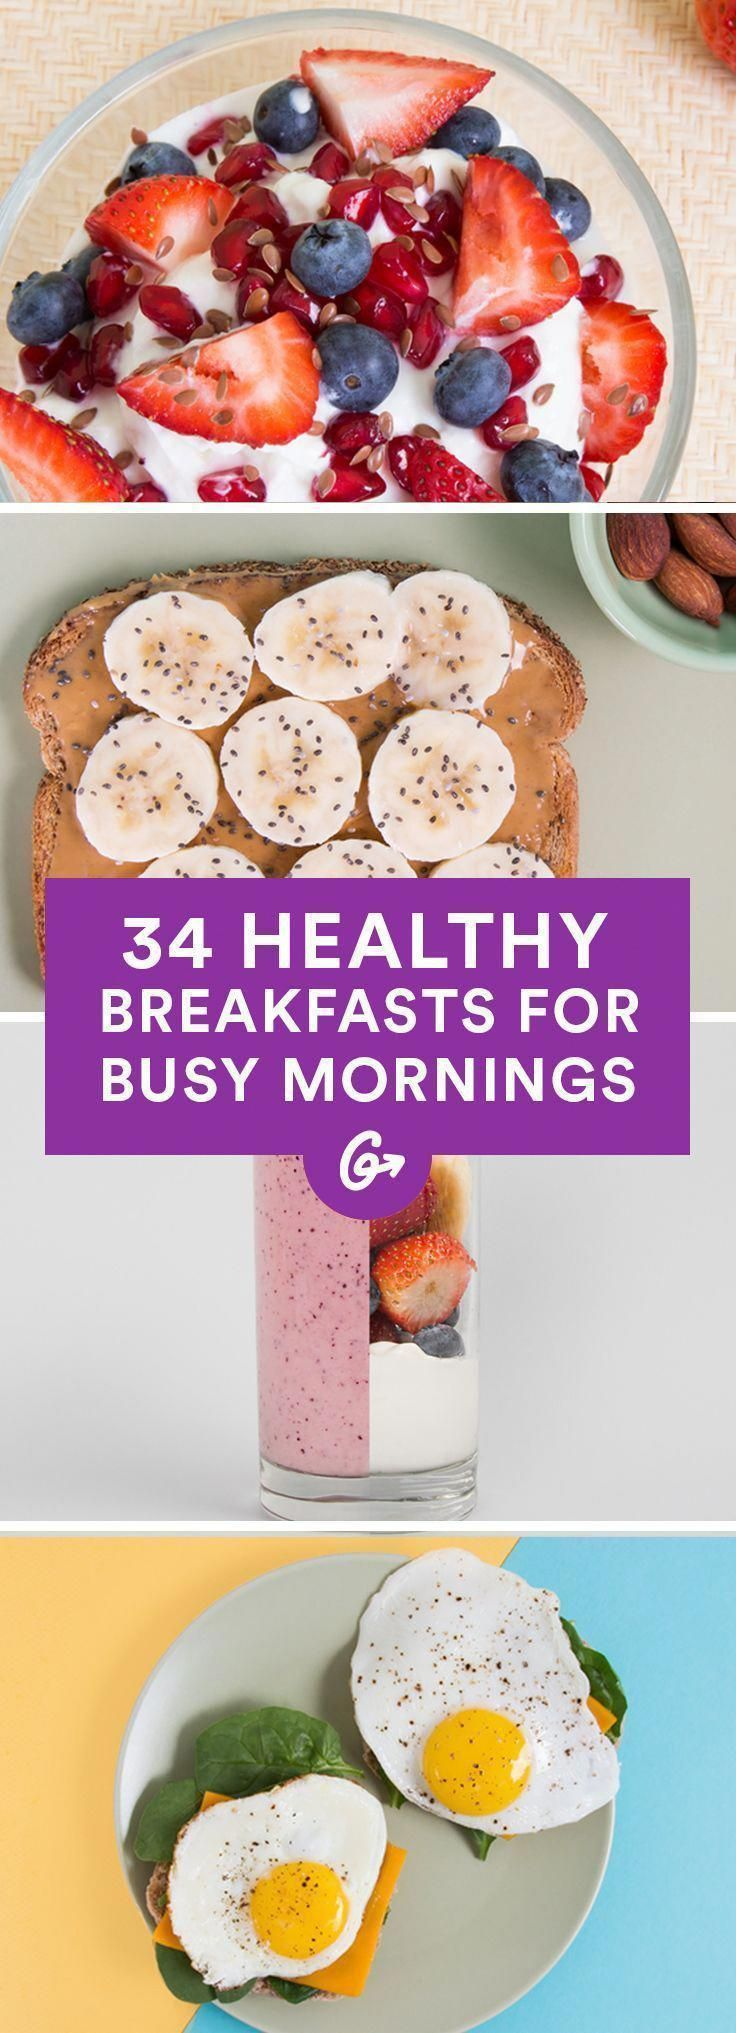 Breakfasts 31 Fast Recipes for Busy Mornings